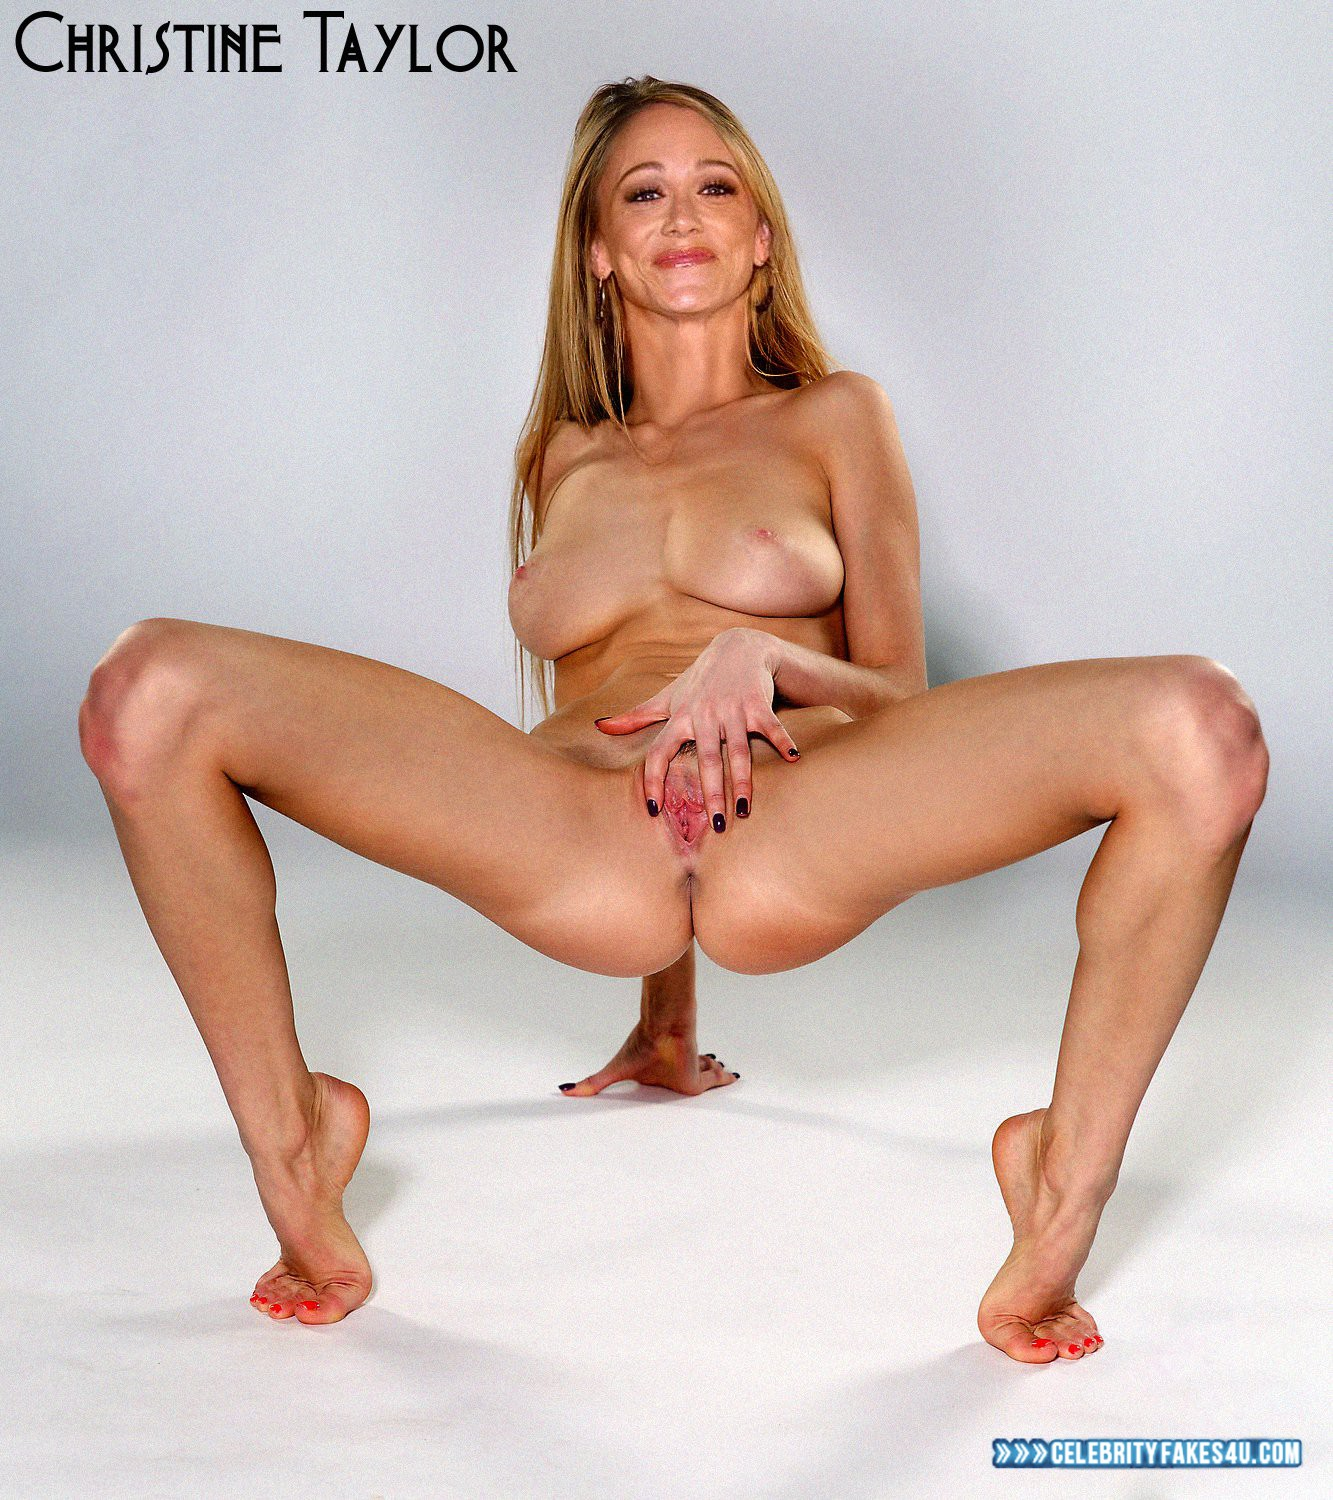 Christine Taylor Fake, Legs, Nude, Pussy, Pussy Spread, Tight Pussy, Tits, Porn